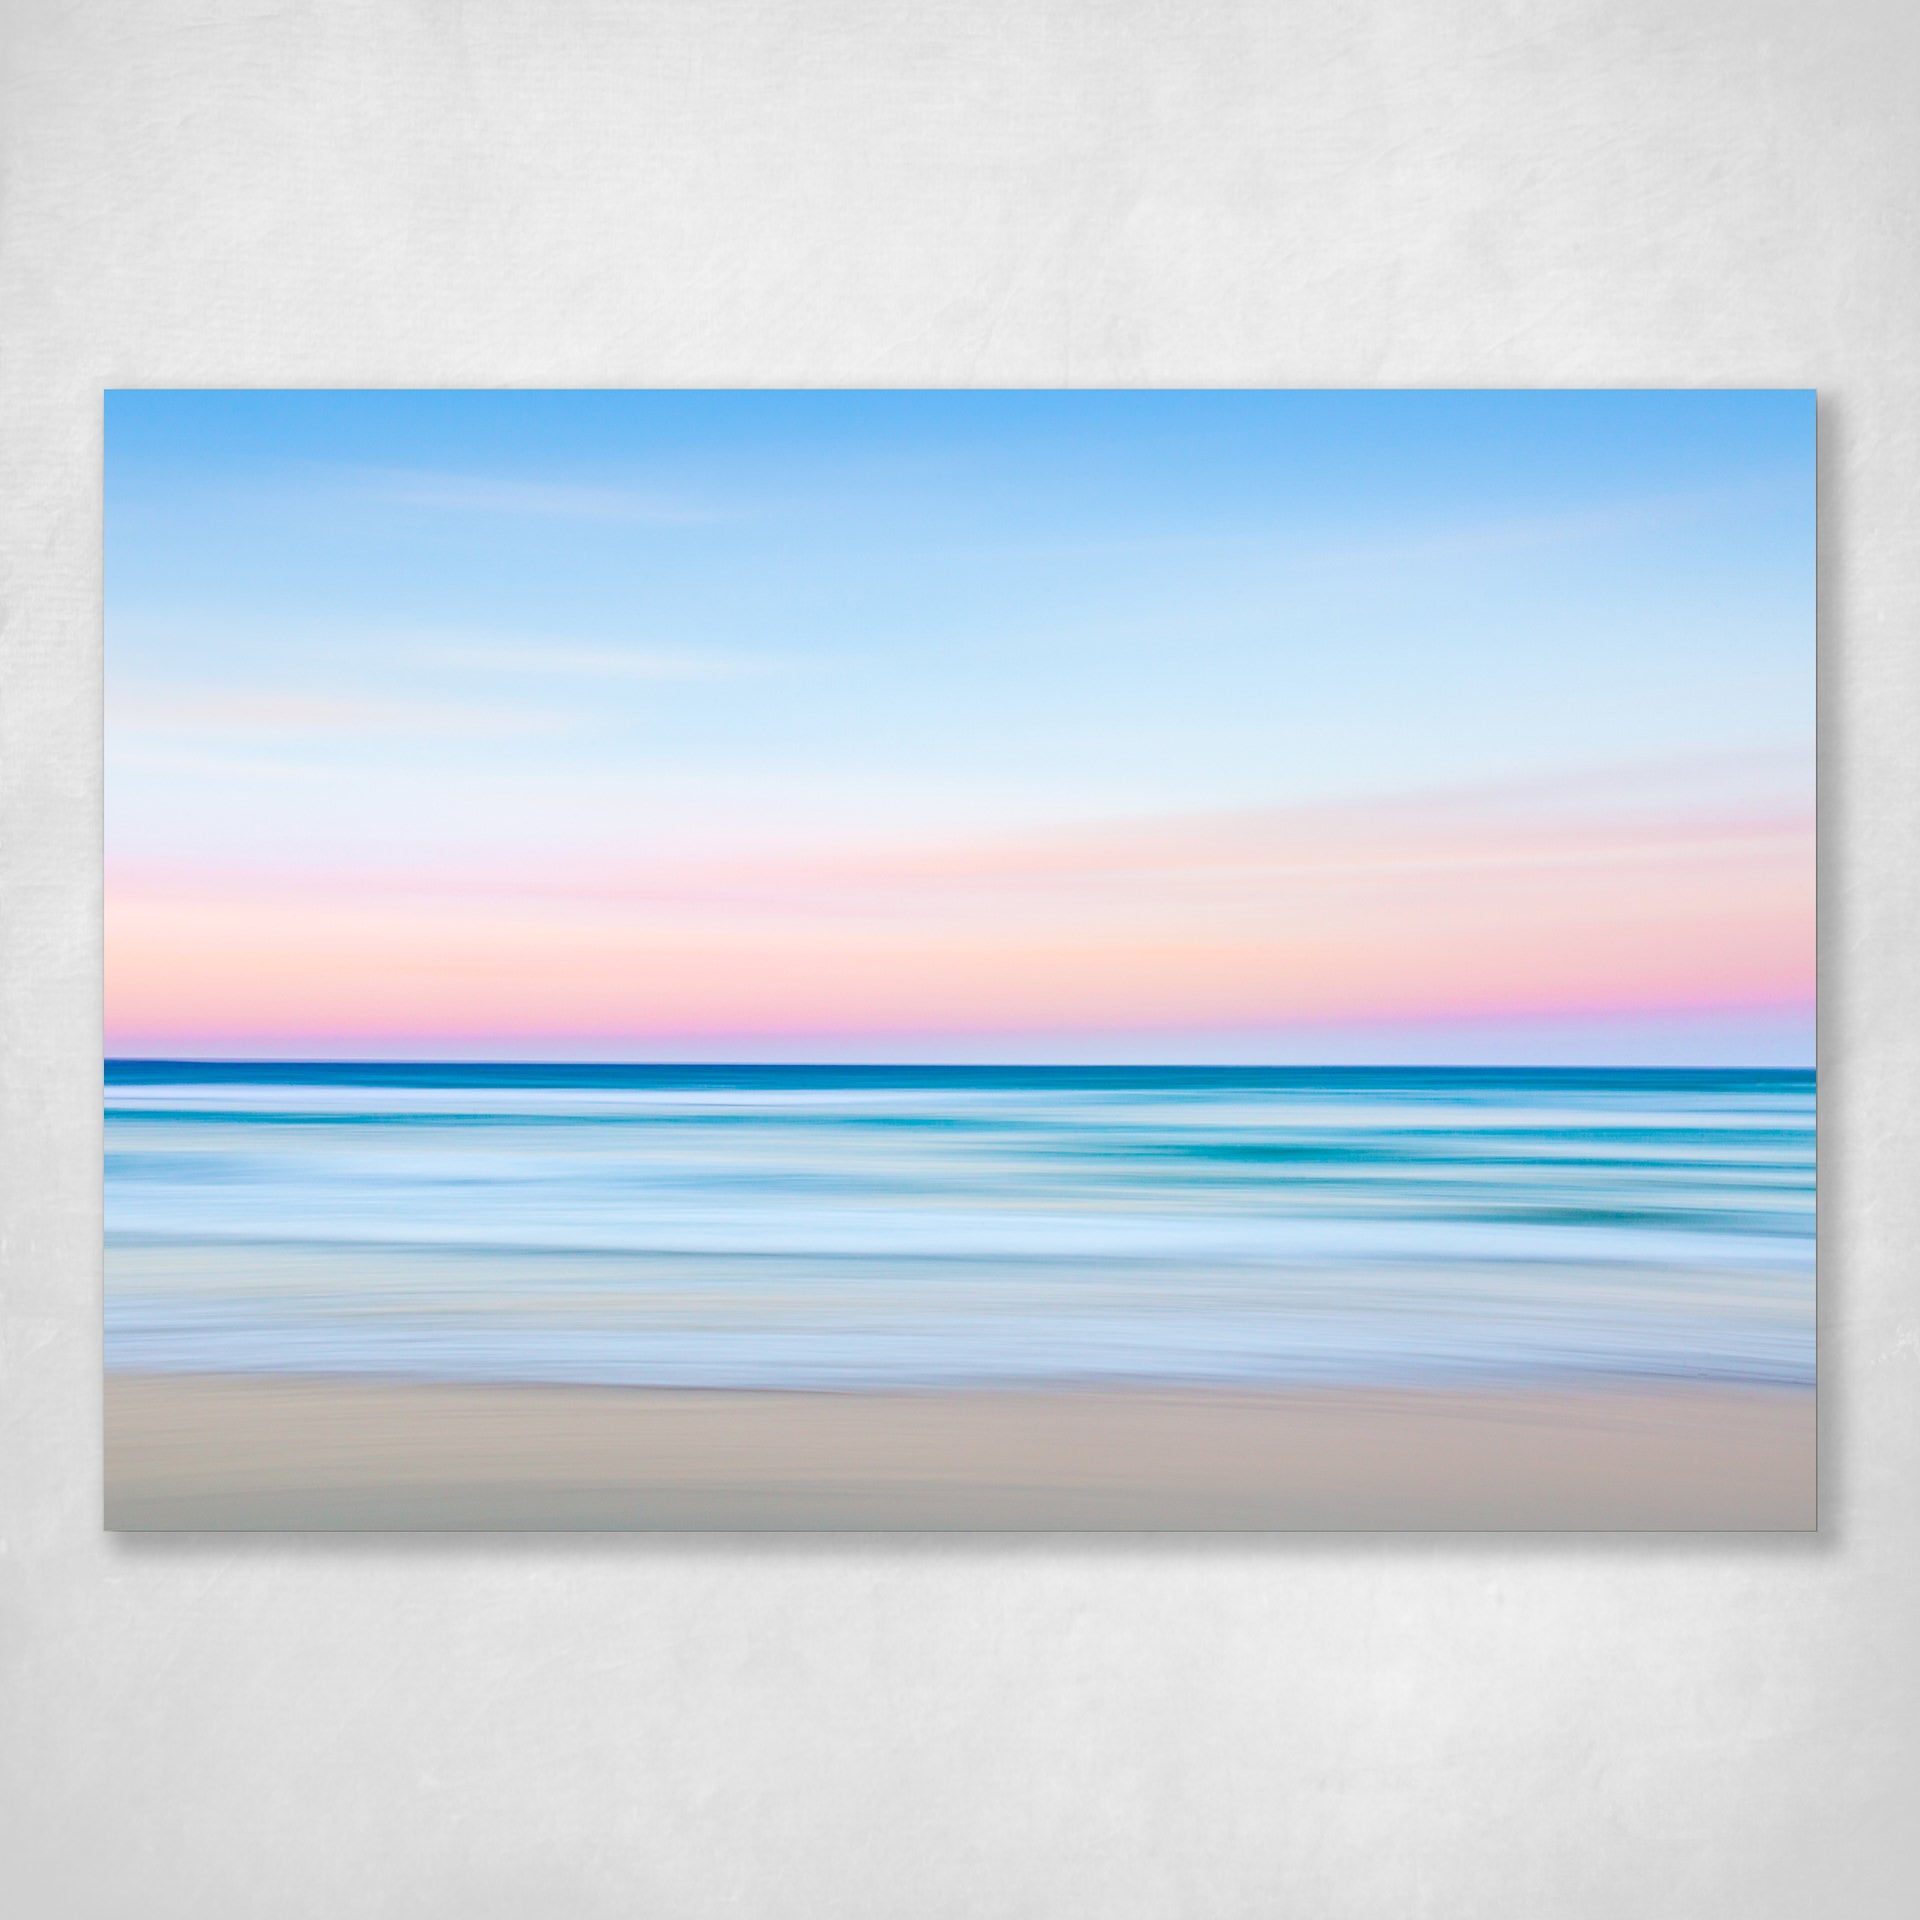 blurred lines of ocean and sunset sky abstract photograph pinks blues by julie sisco photography stradbroke